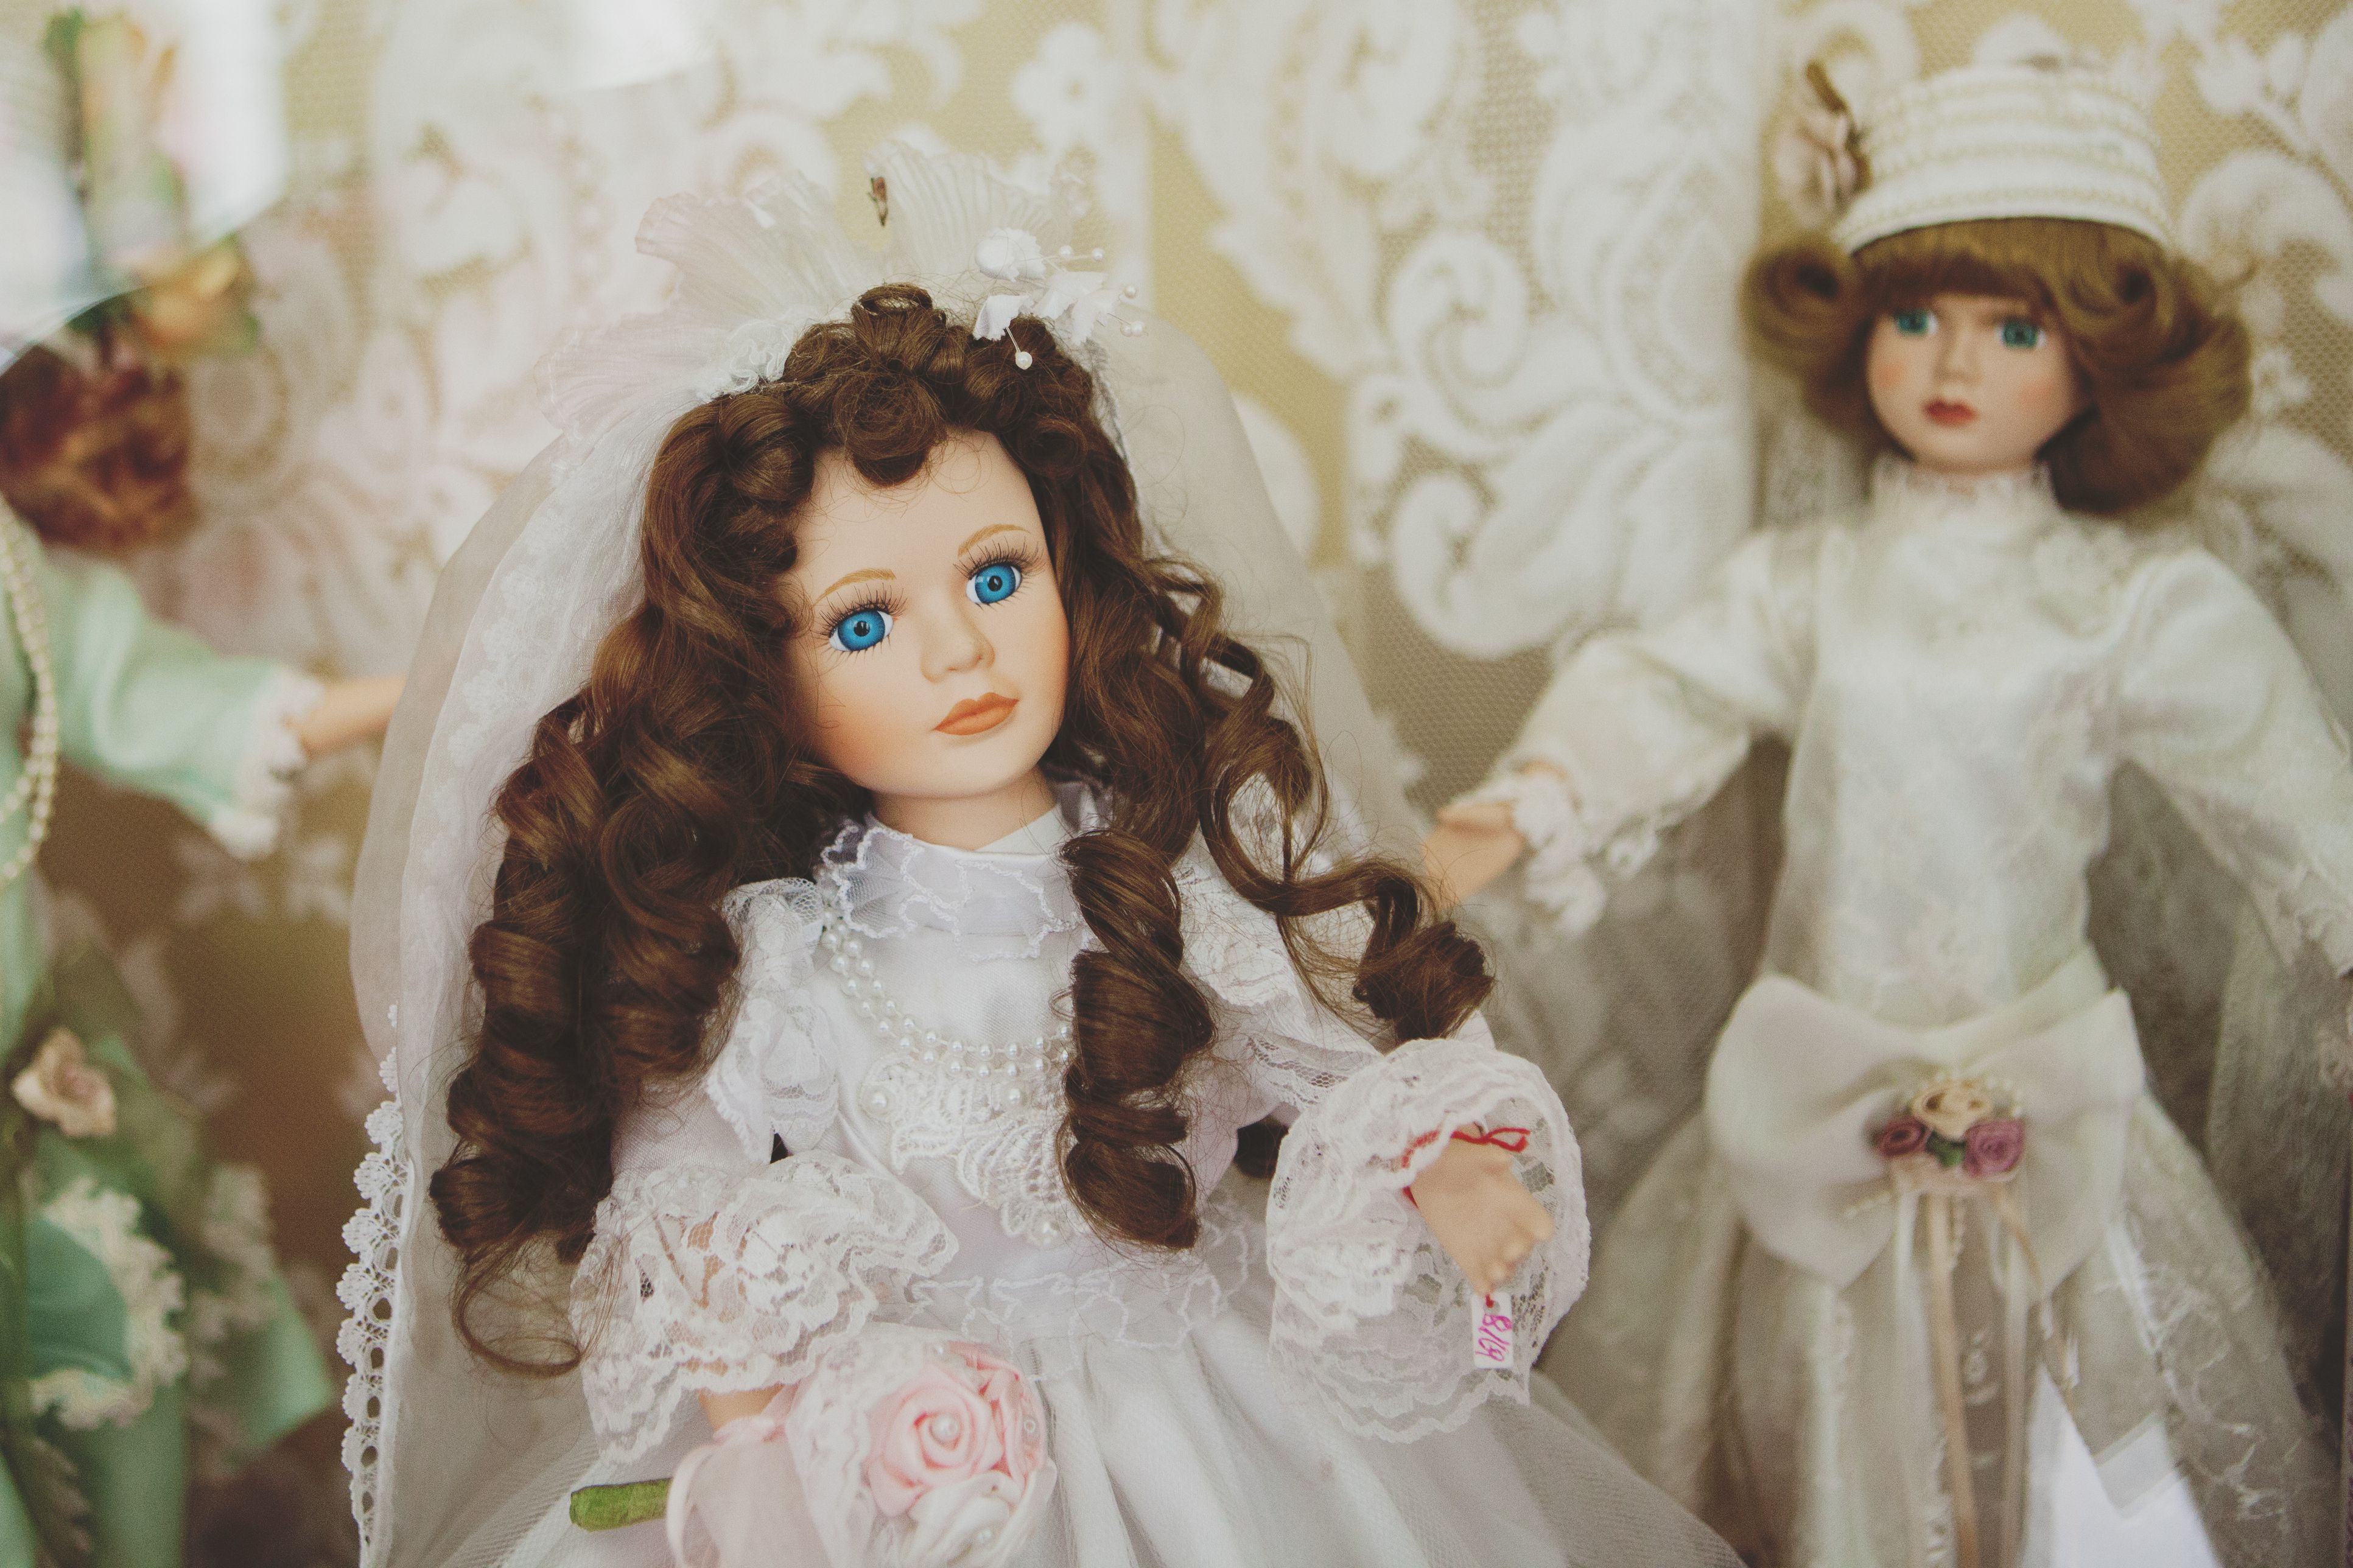 Easy Tips for Cleaning and Restoring Vinyl Doll Skin